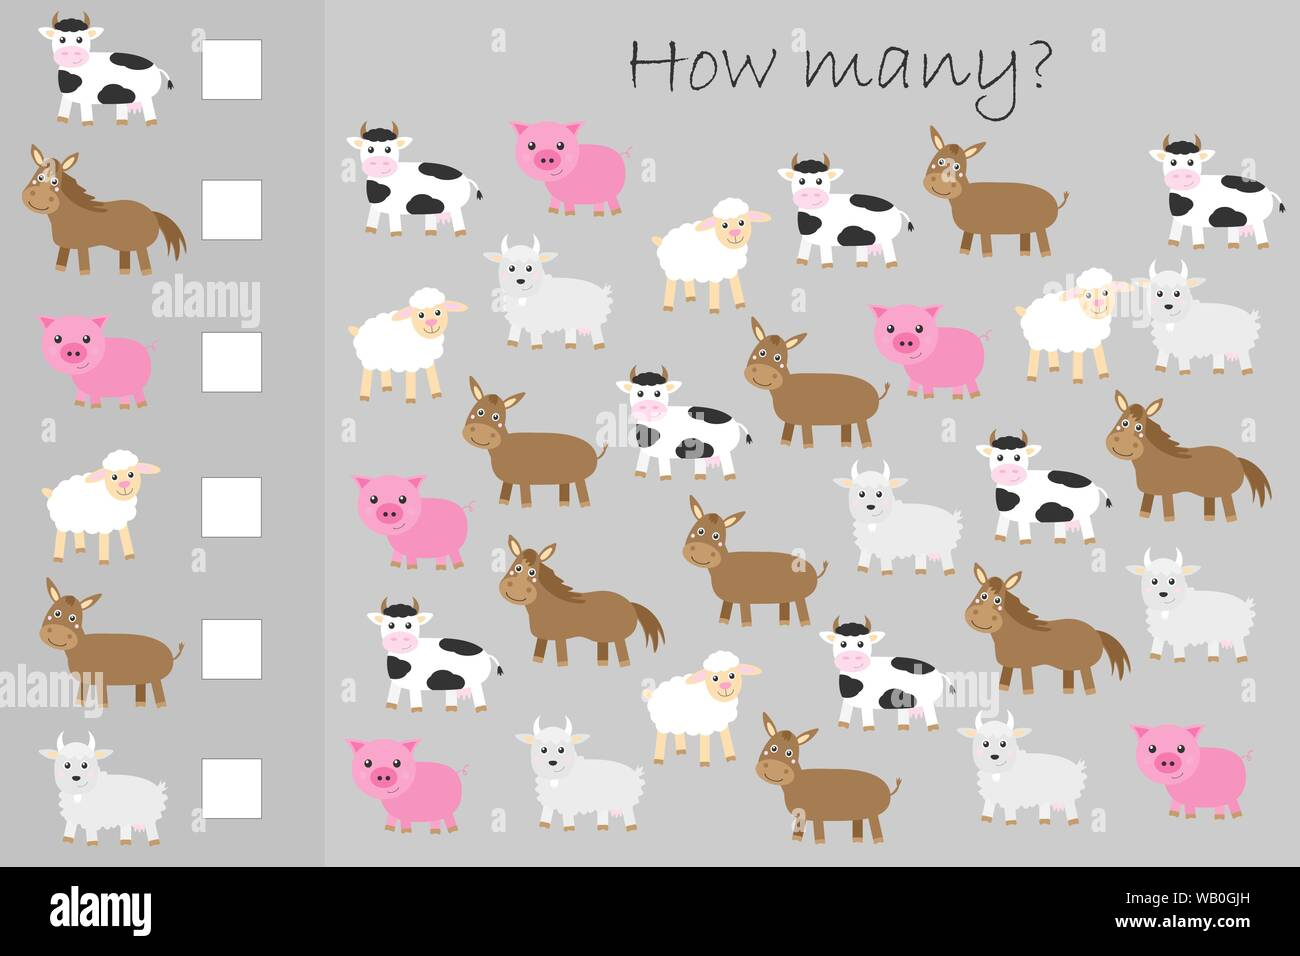 How Many Counting Game Farm Animals For Kids Educational